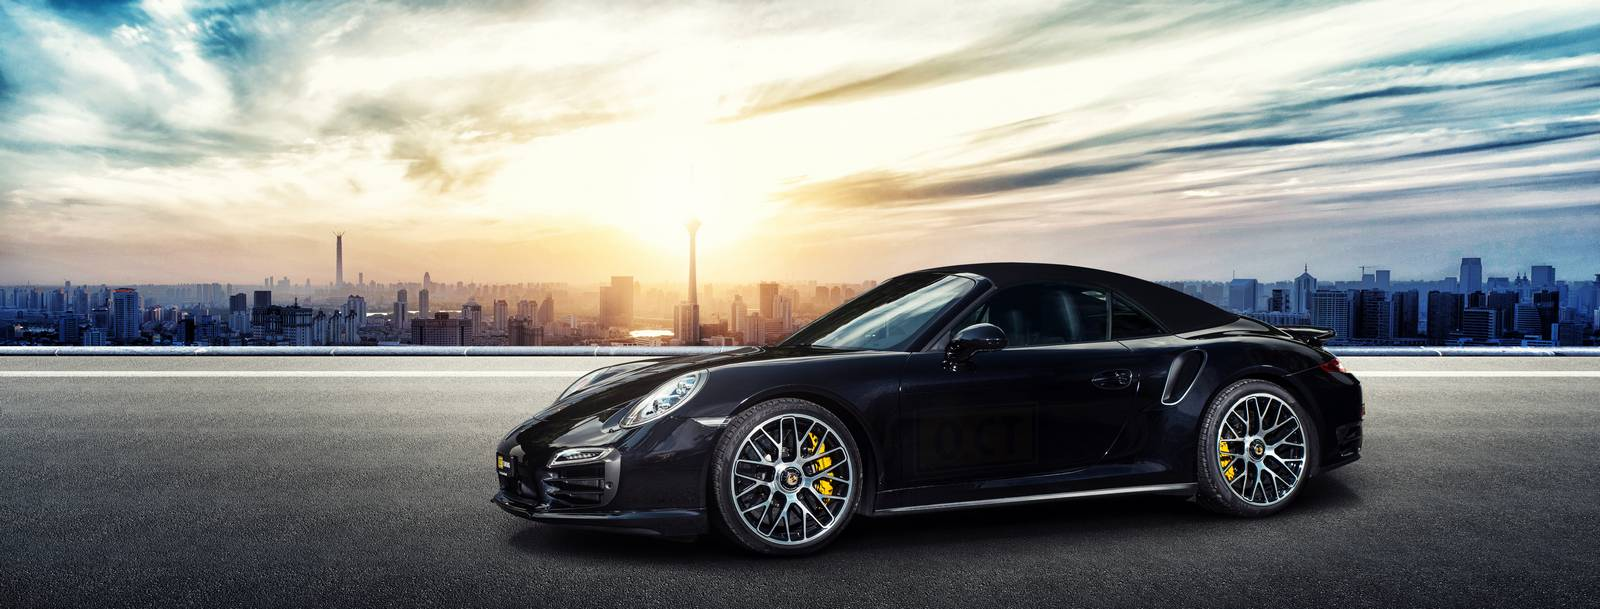 official porsche 911 turbo s by o ct tuning gtspirit. Black Bedroom Furniture Sets. Home Design Ideas